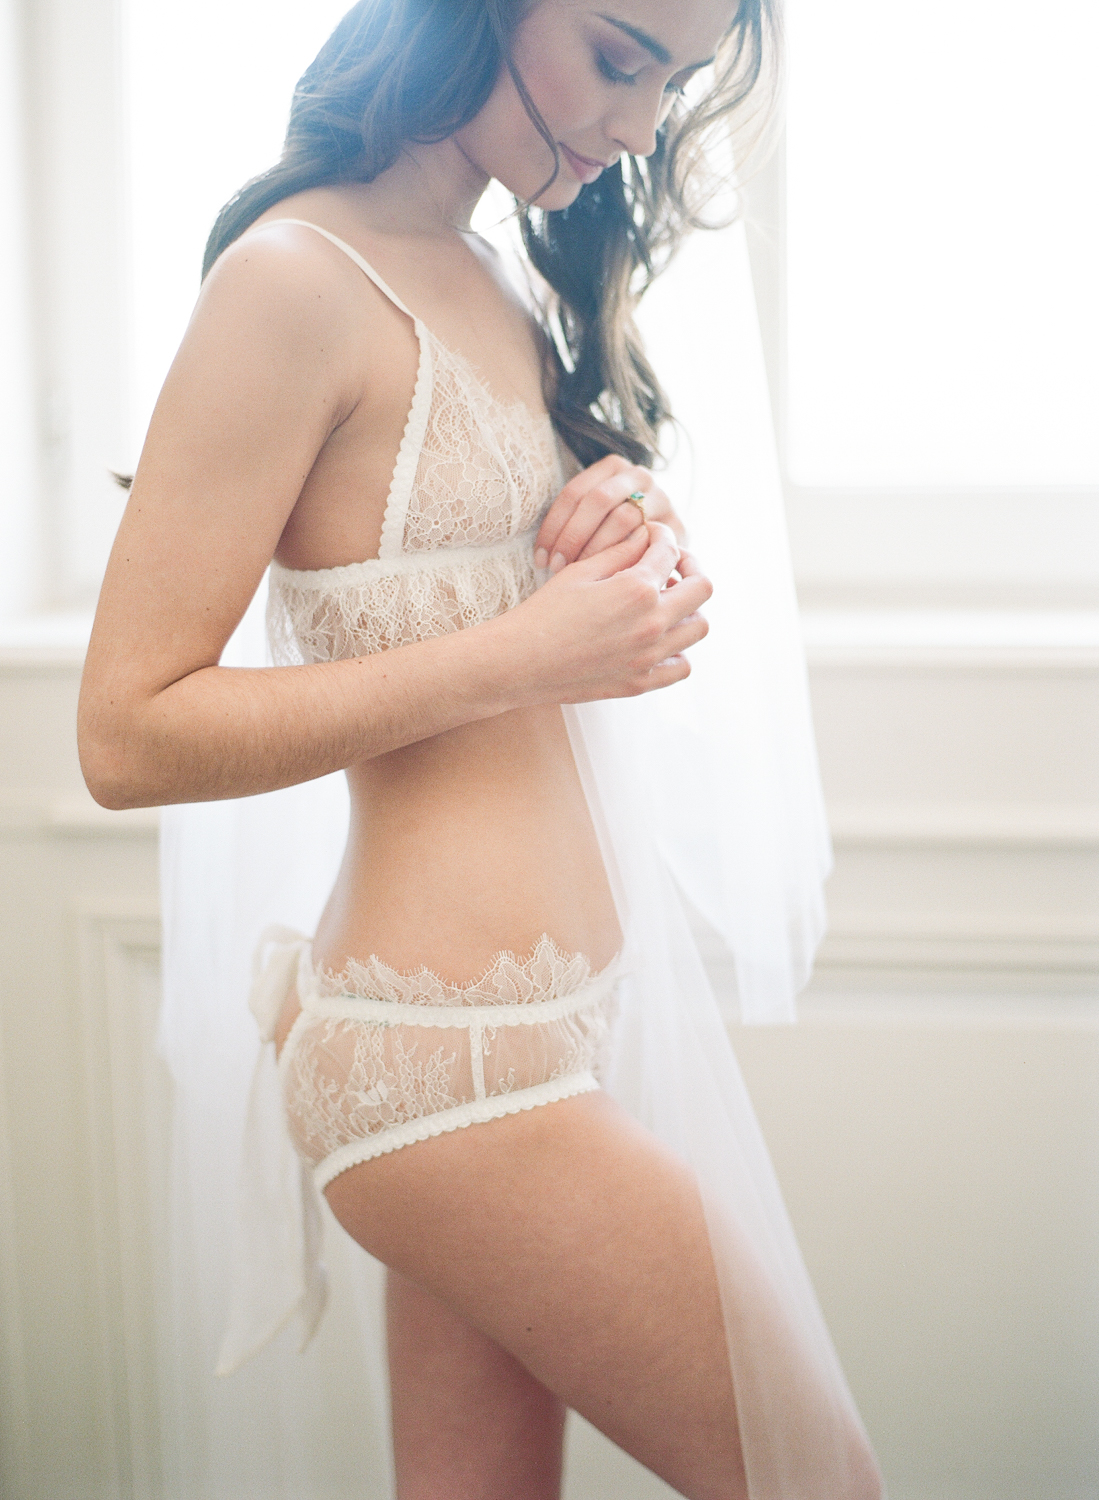 A bride looks at her ring during a boudoir session at Chateau de Varennes; Sylvie Gil Photography